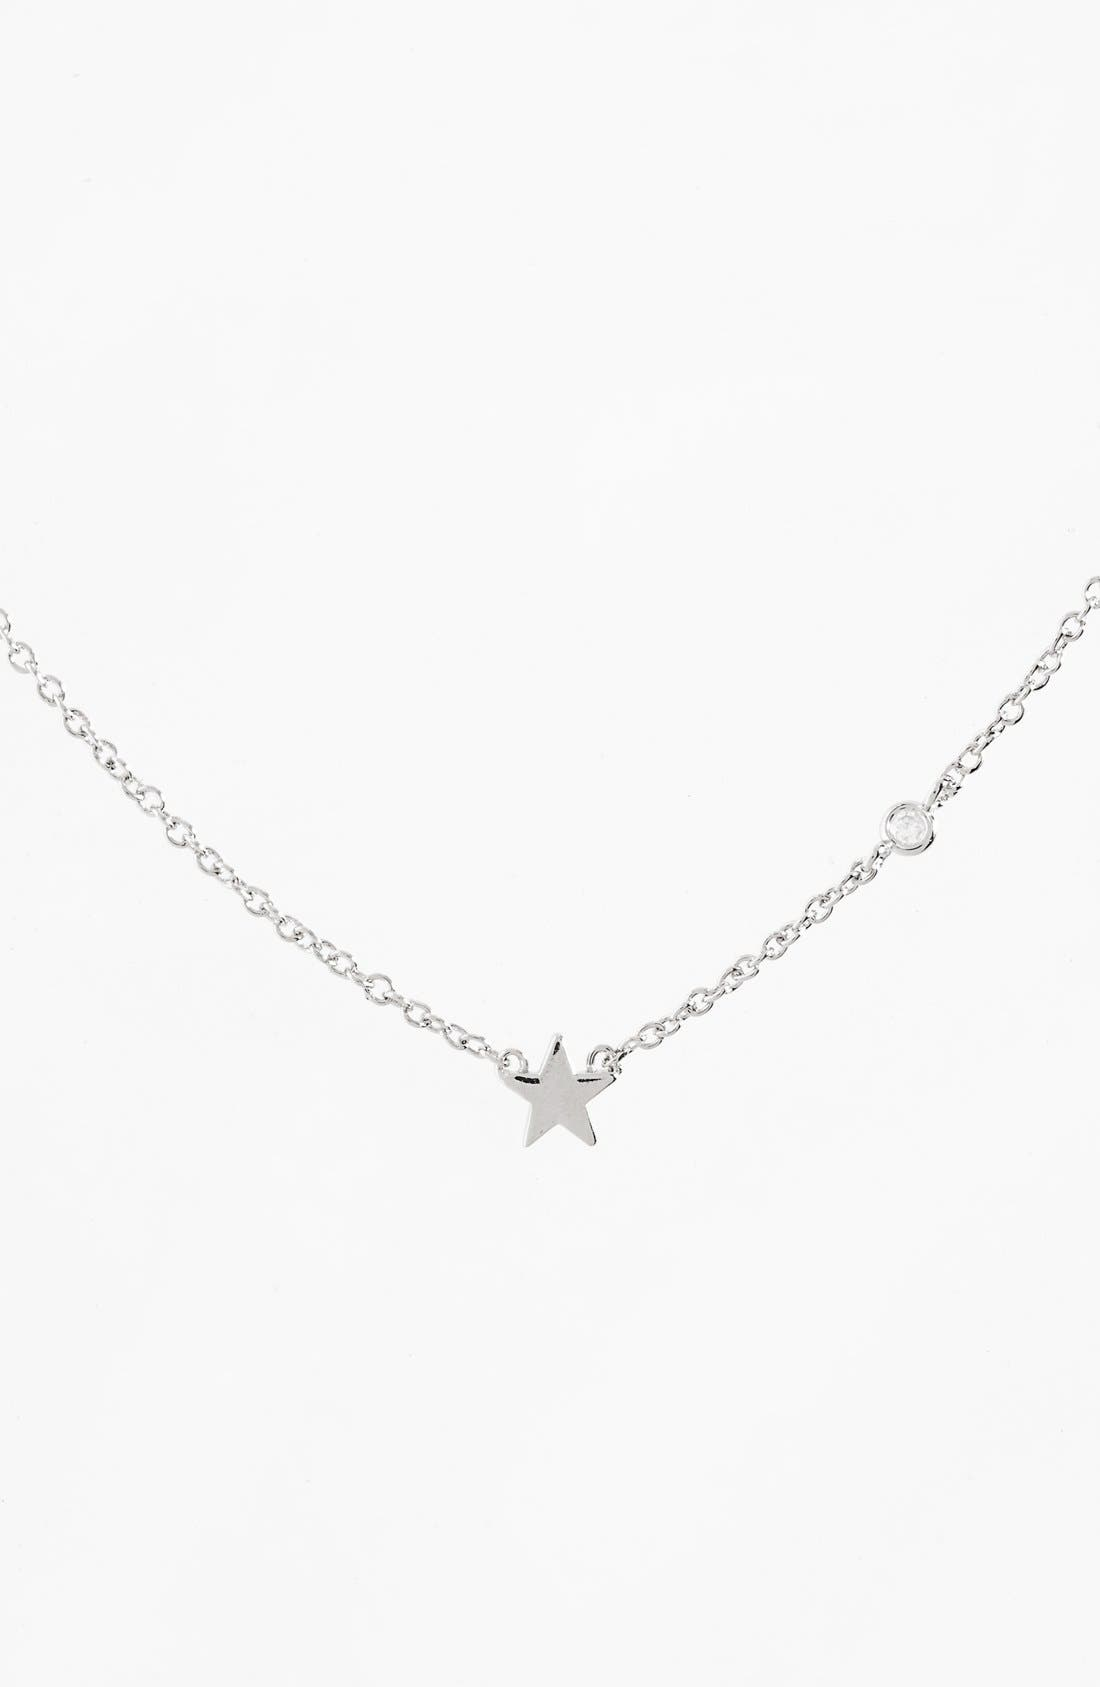 Shy by SE Star Necklace,                             Main thumbnail 1, color,                             040